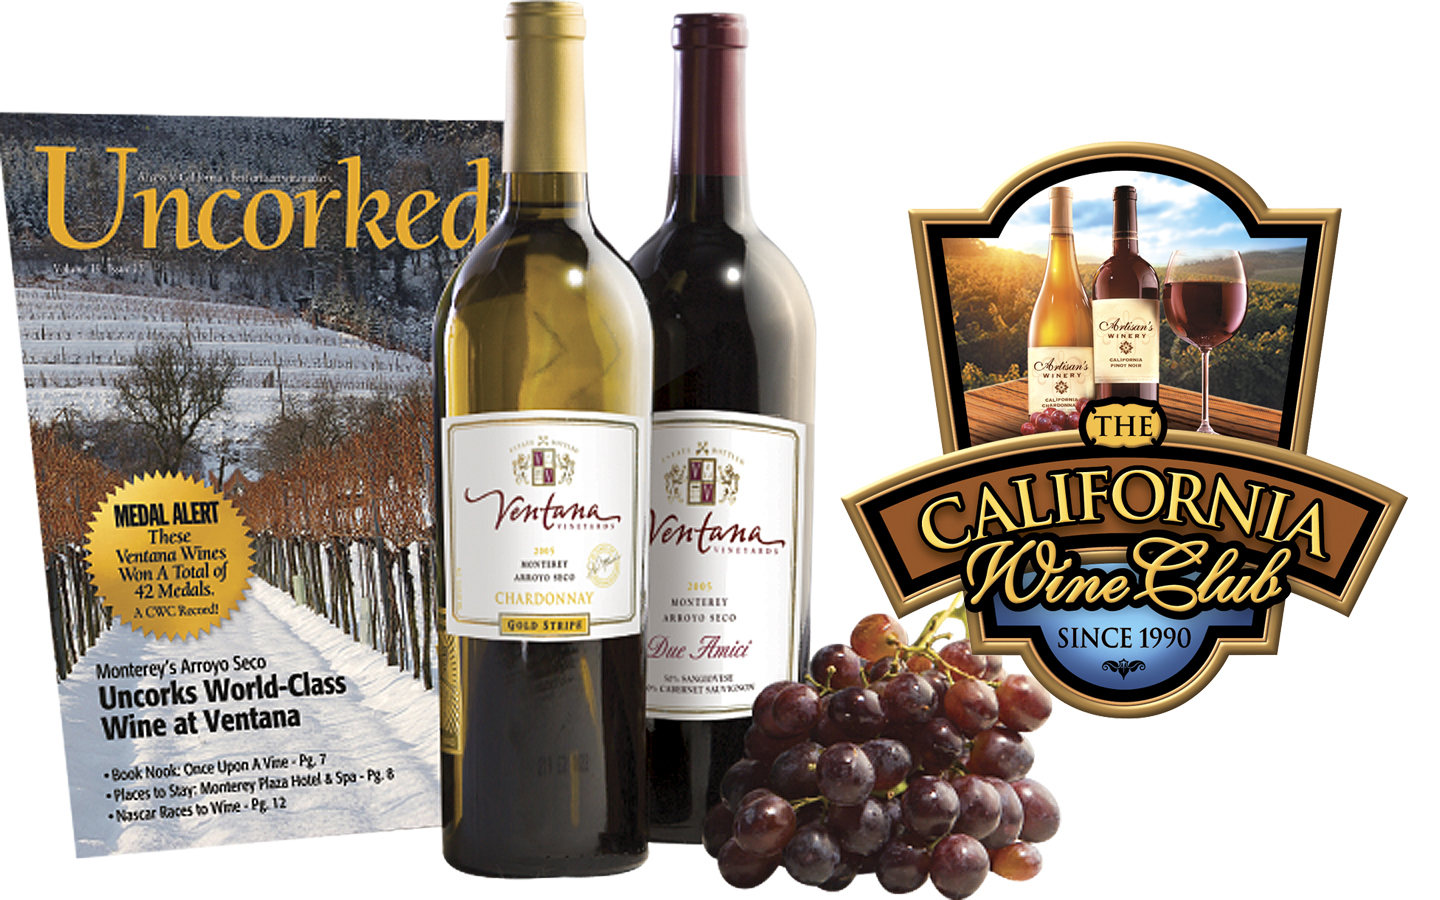 The California Wine Club One Month Premier Series Gift